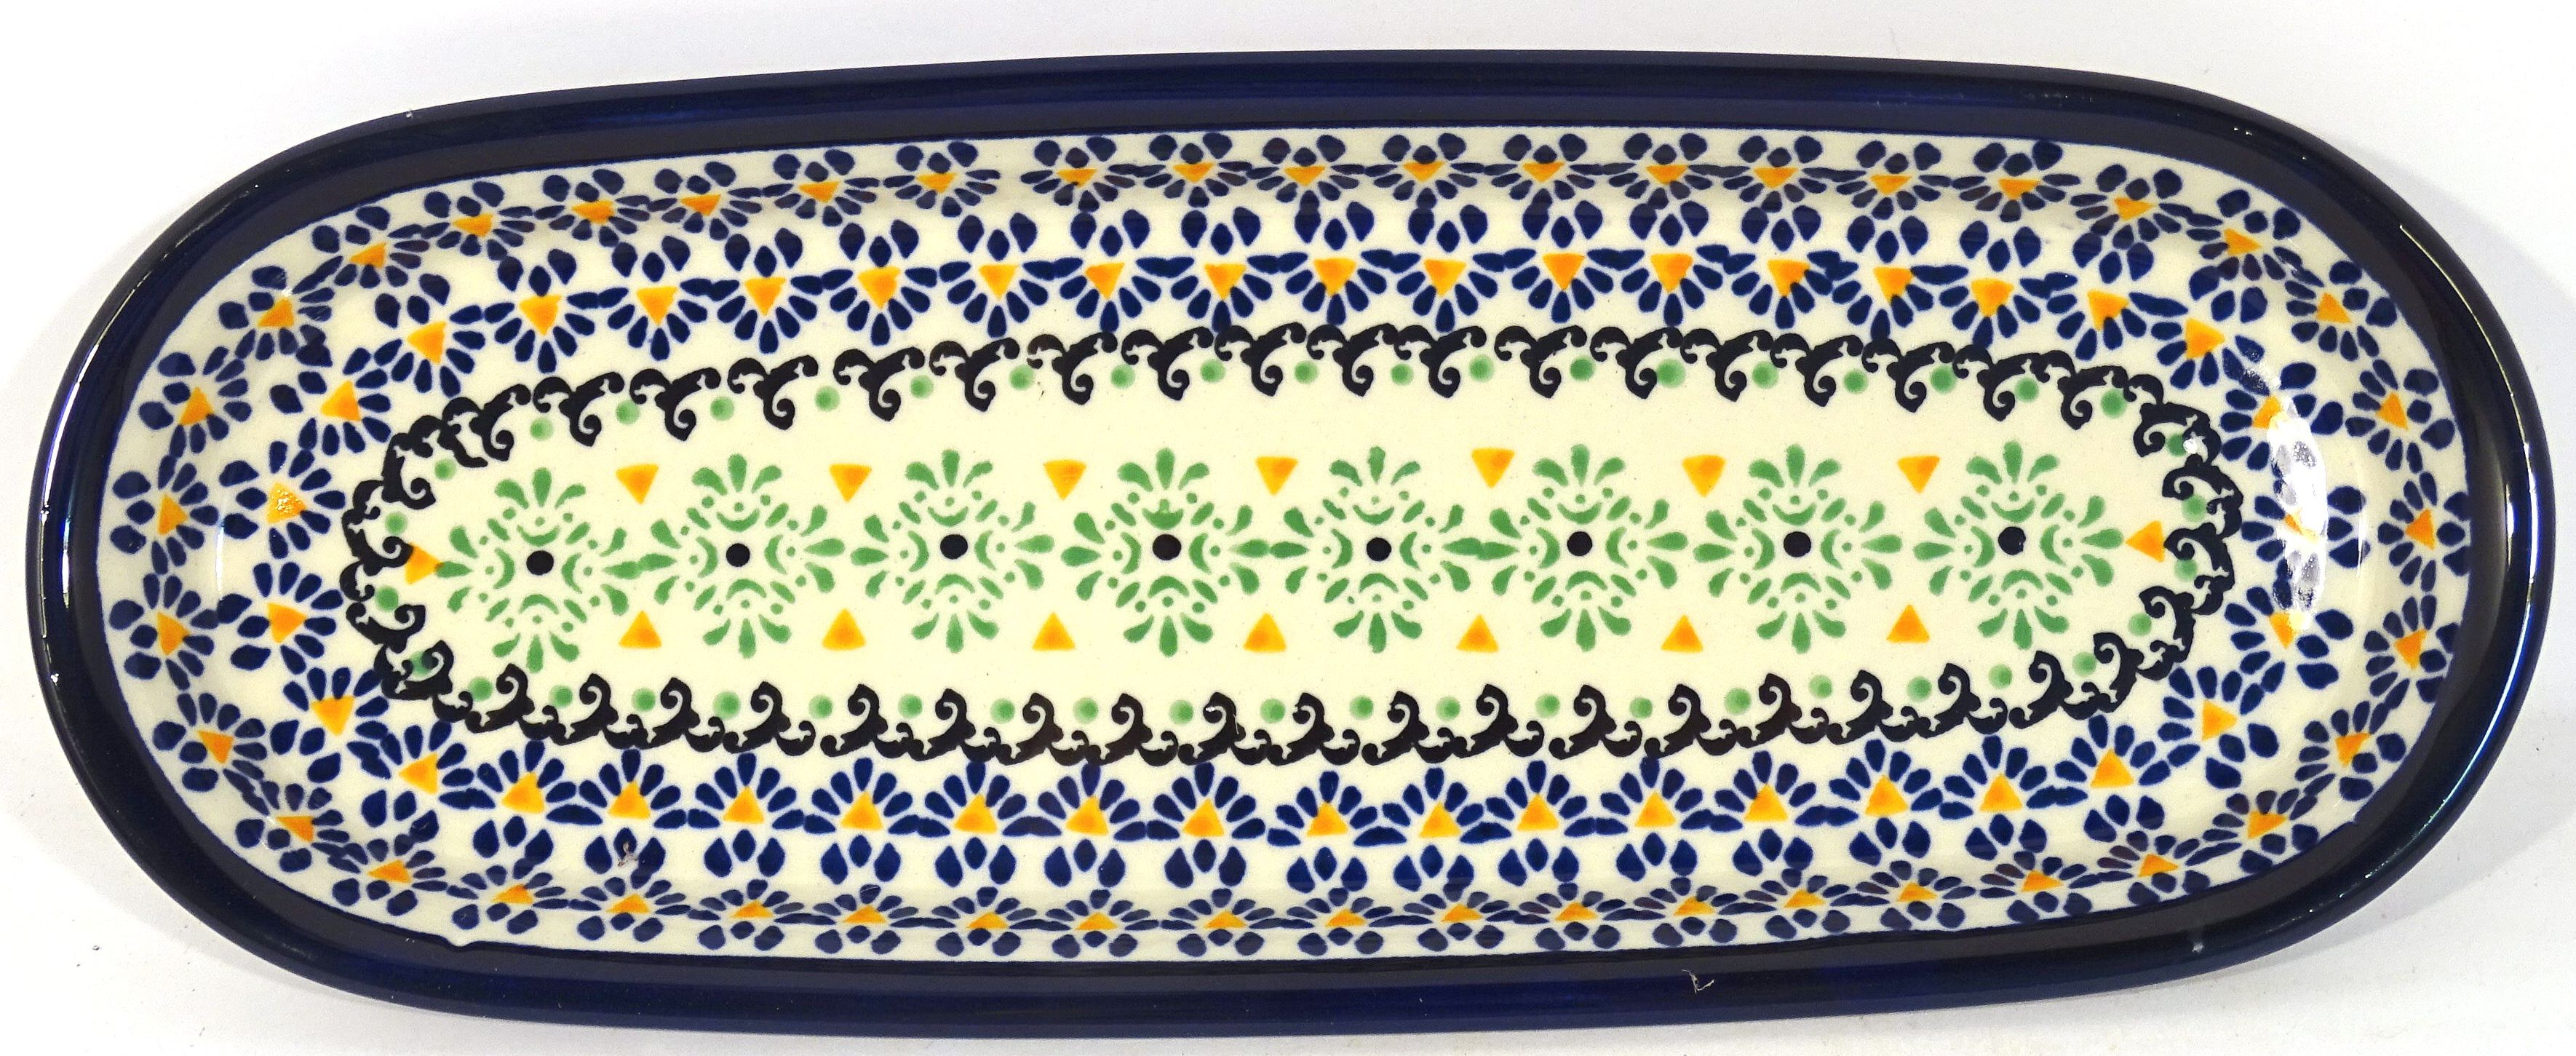 """Pottery Avenue 11"""" FANFAIR Cracker-Olive Stoneware Tray 